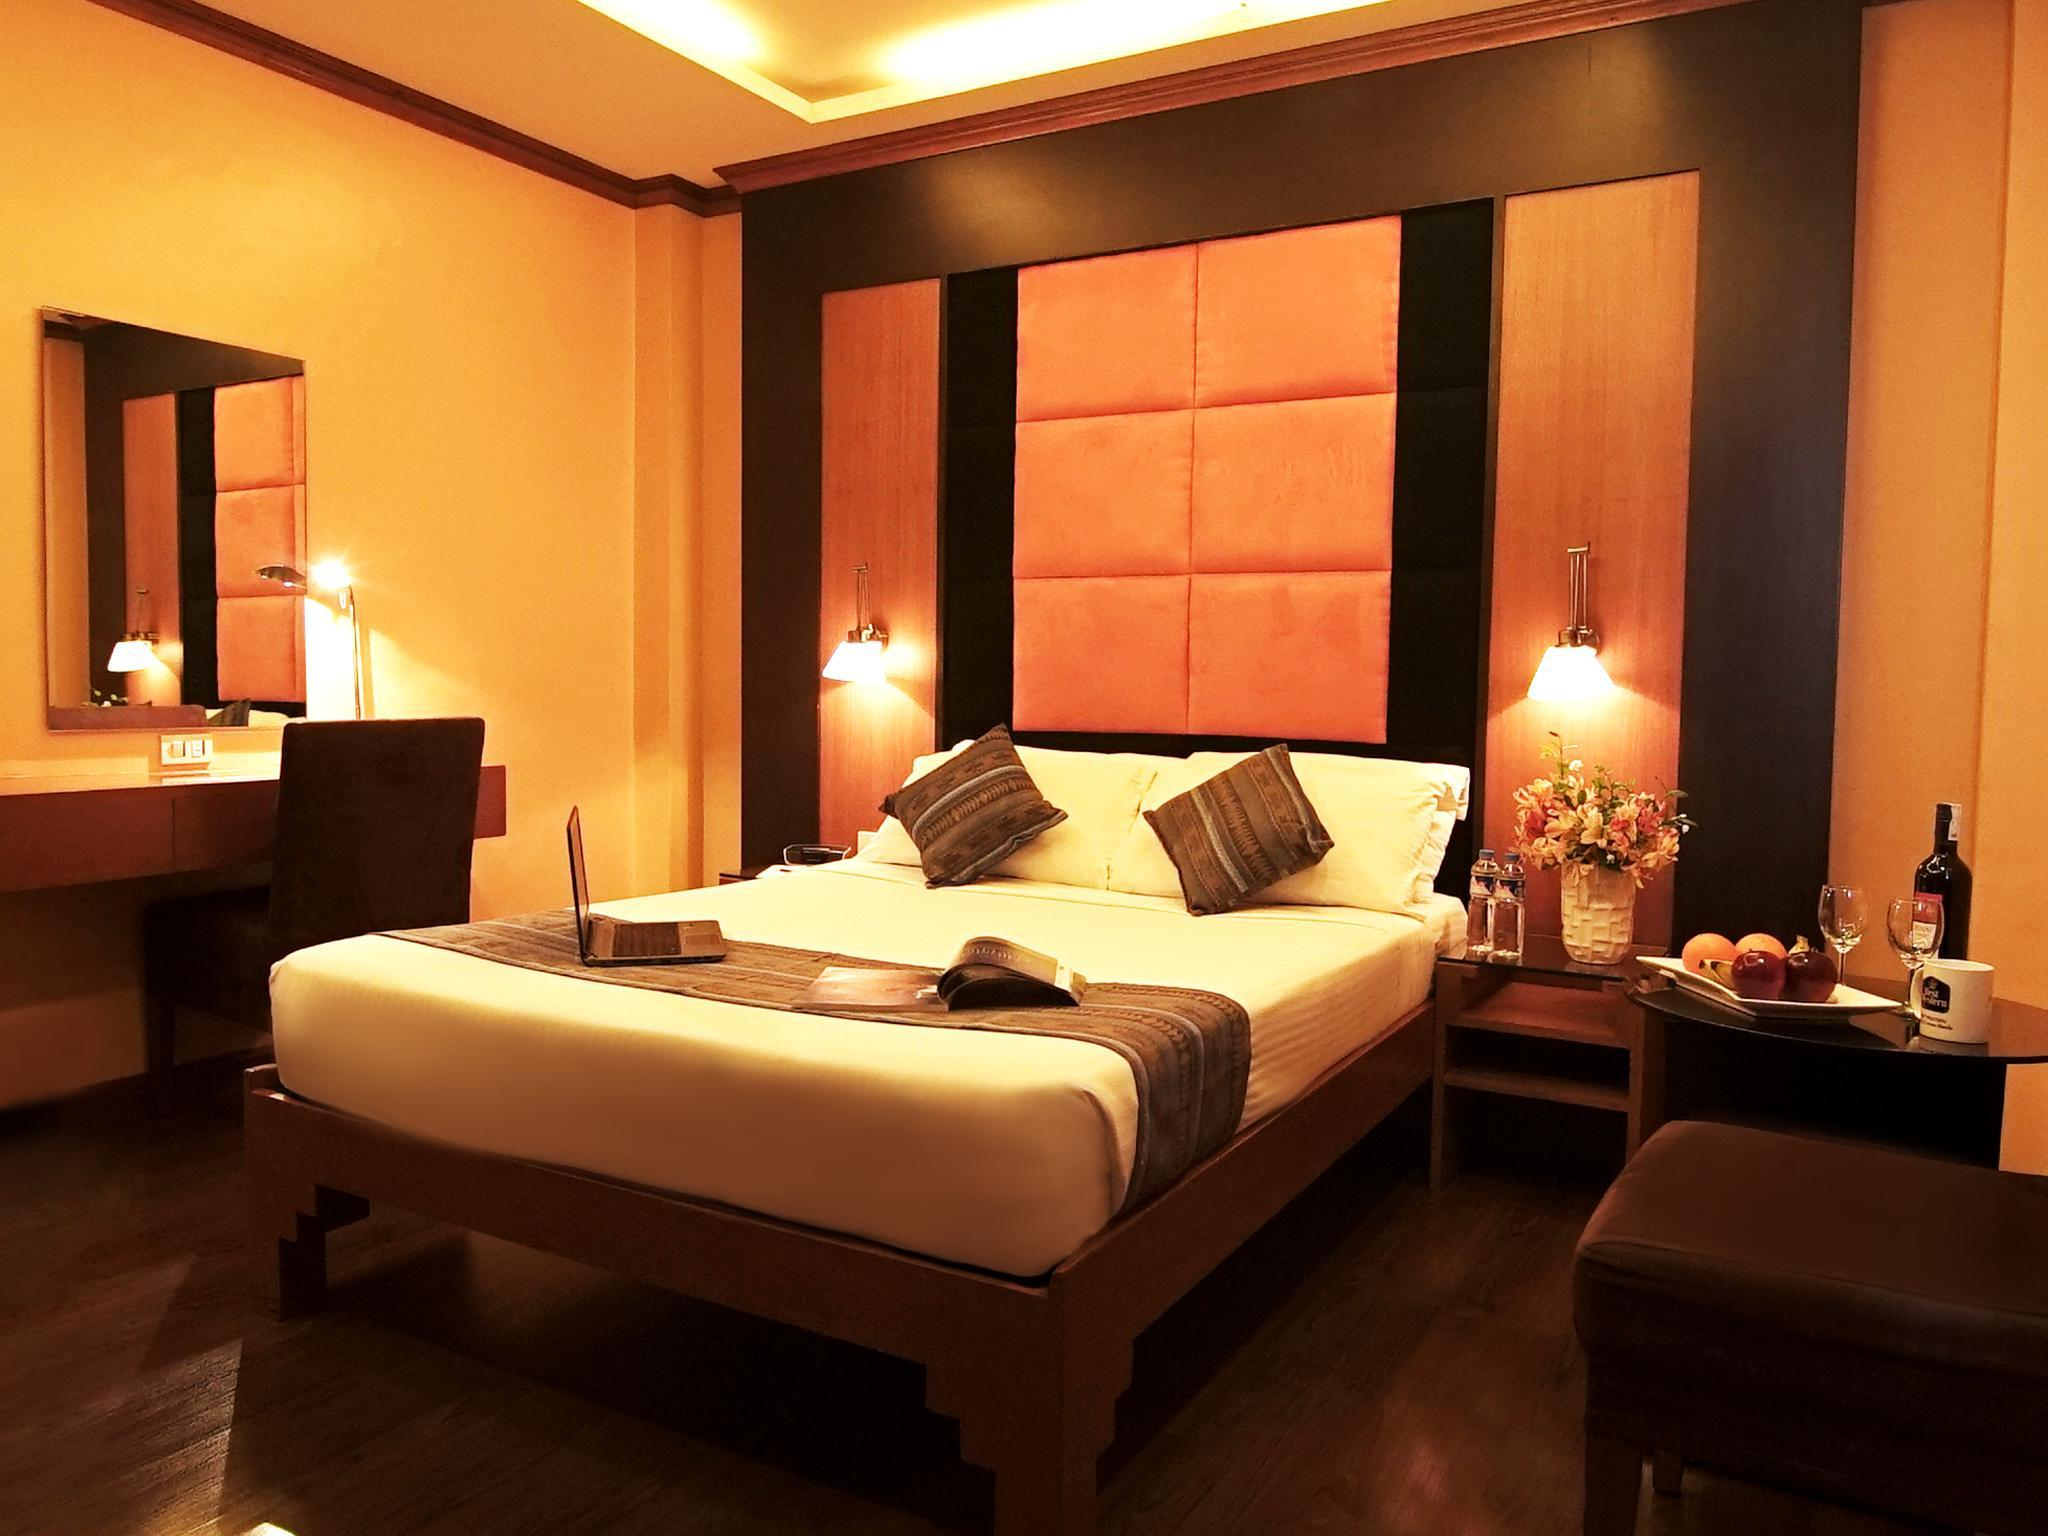 Kamar Superior dengan Kasur Queen – Bebas Asap Rokok (1 Queen Bed Superior Room, No Smoking)